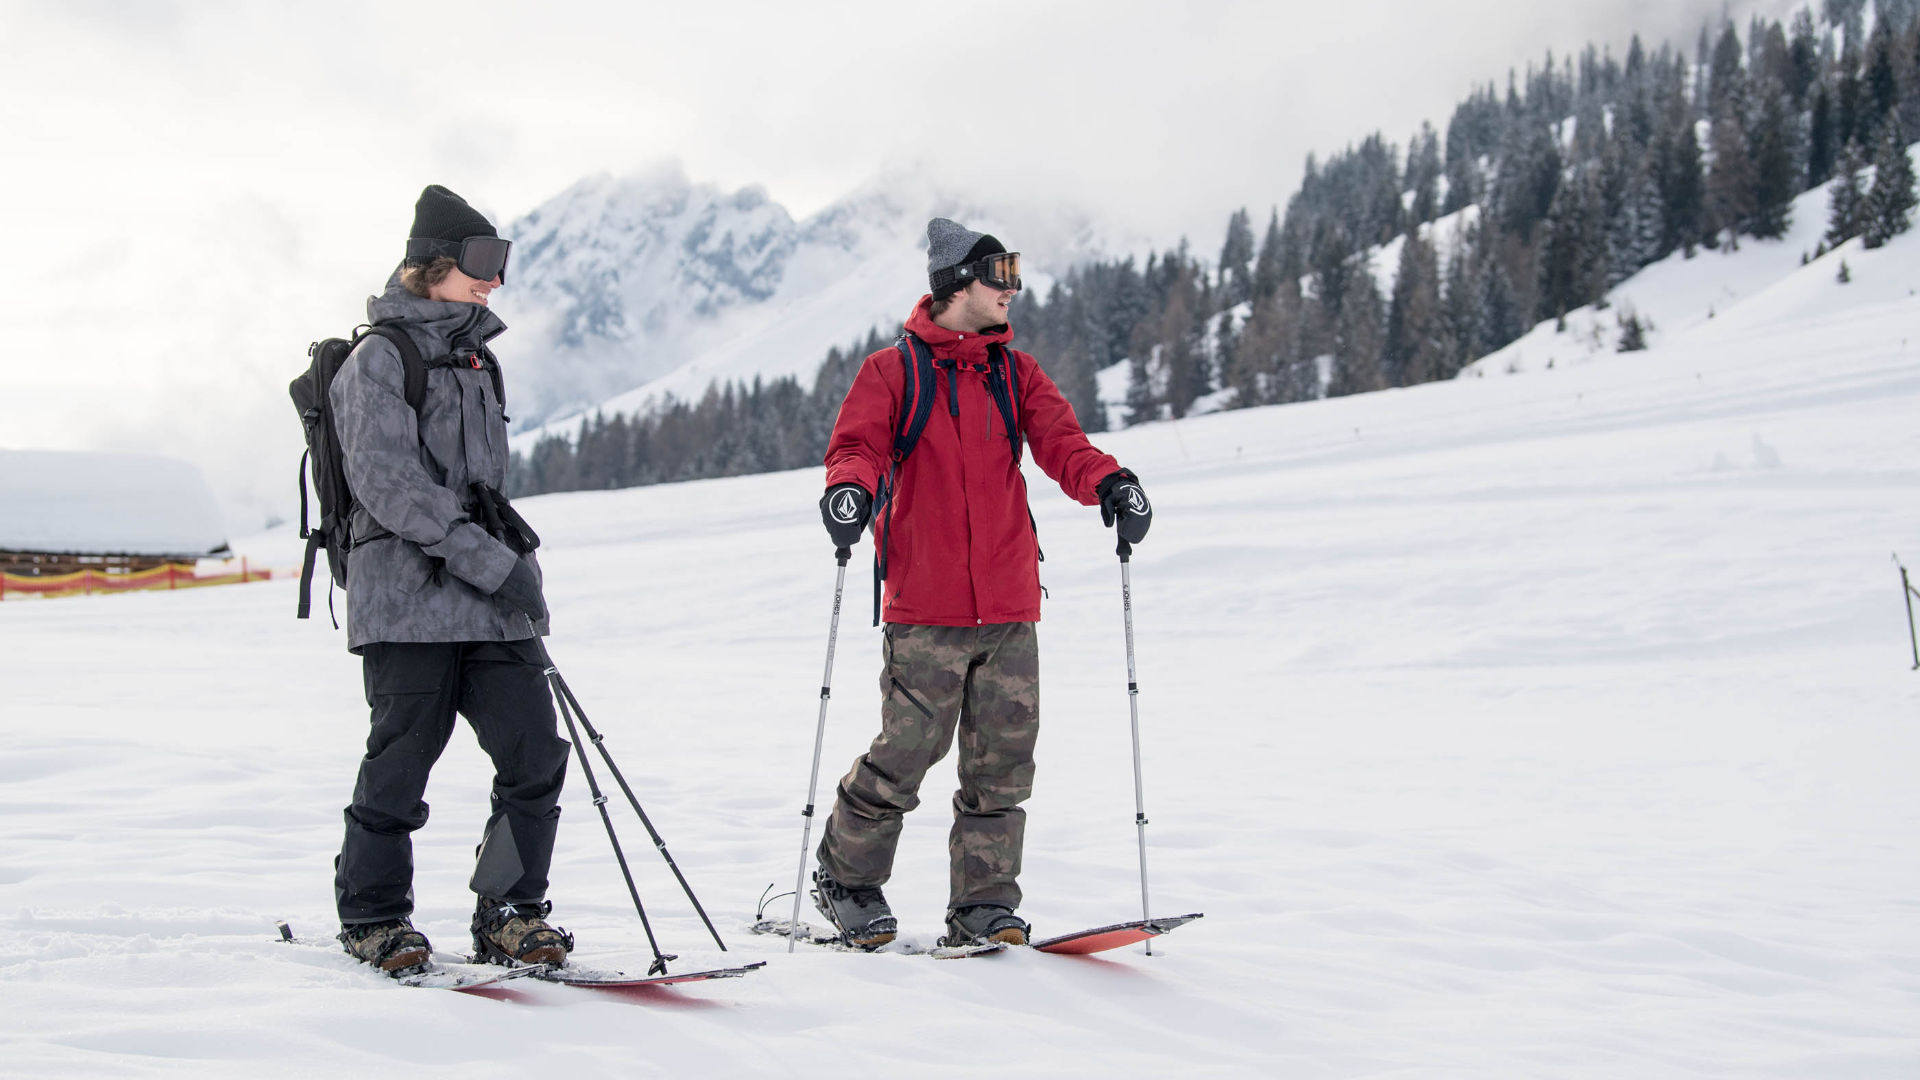 Splitboarding in the backcountry with stiff snowboard boots